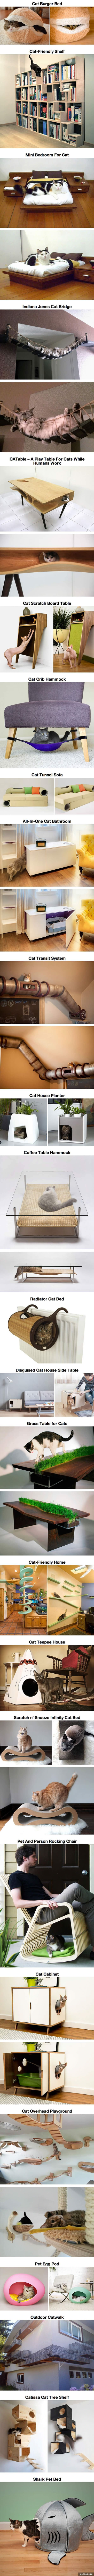 My favorite: the beautiful stepped bookshelves, among these 25 Awesome Furniture Design Ideas For Cat Lovers.